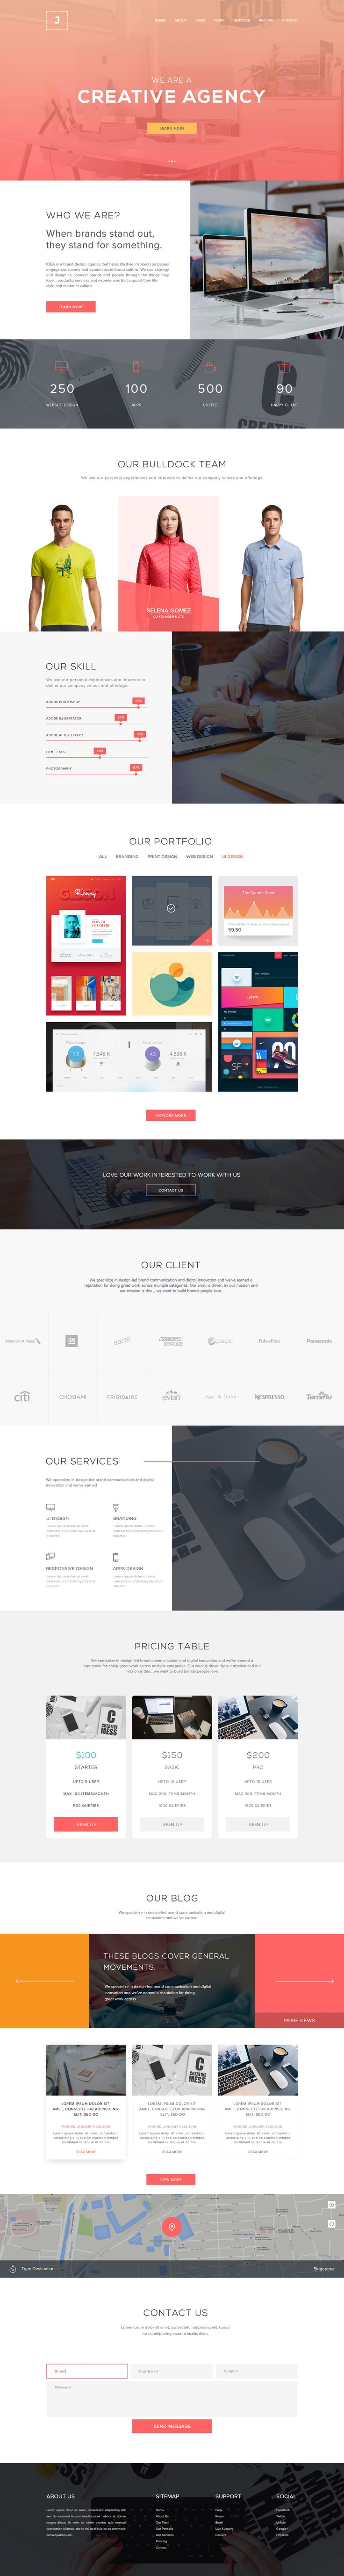 56 best UX Heaven images on Pinterest | Interface design, User ...